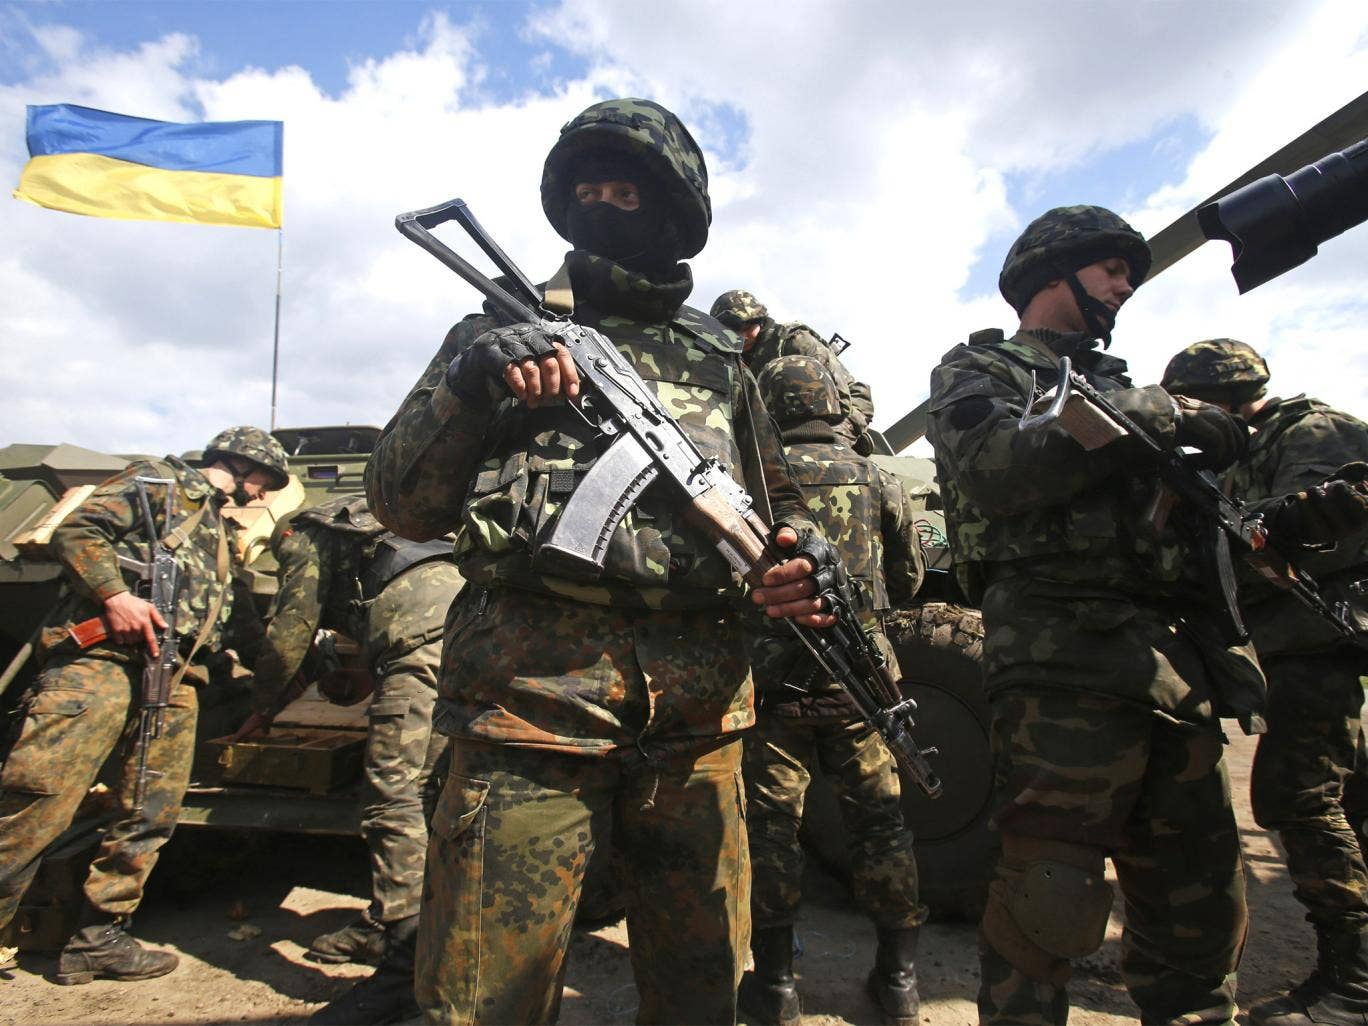 Ukrainian army troops receive ammunition in a field on the outskirts of Izyum in eastern Ukraine